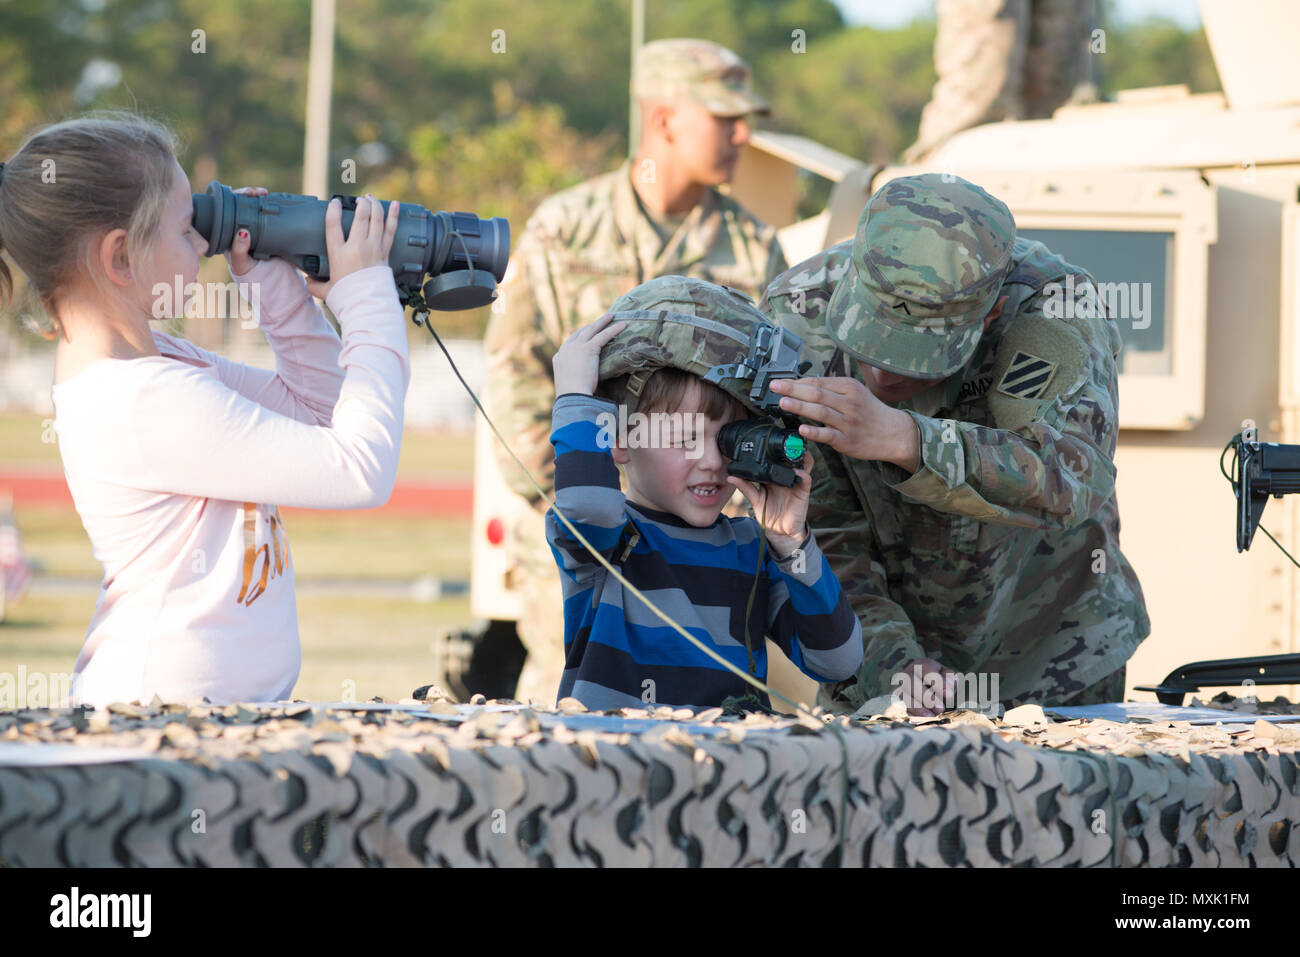 3rd Infantry Division family members takes peer through optics at a static display during Marne Week on Fort Stewart Nov. 15, 2016. Marne Week is a week of special activities for soldiers and family members in celebration of the 99th anniversary of the 3rd Infantry Division. (Photo by LTC Brian J. Fickel) - Stock Image